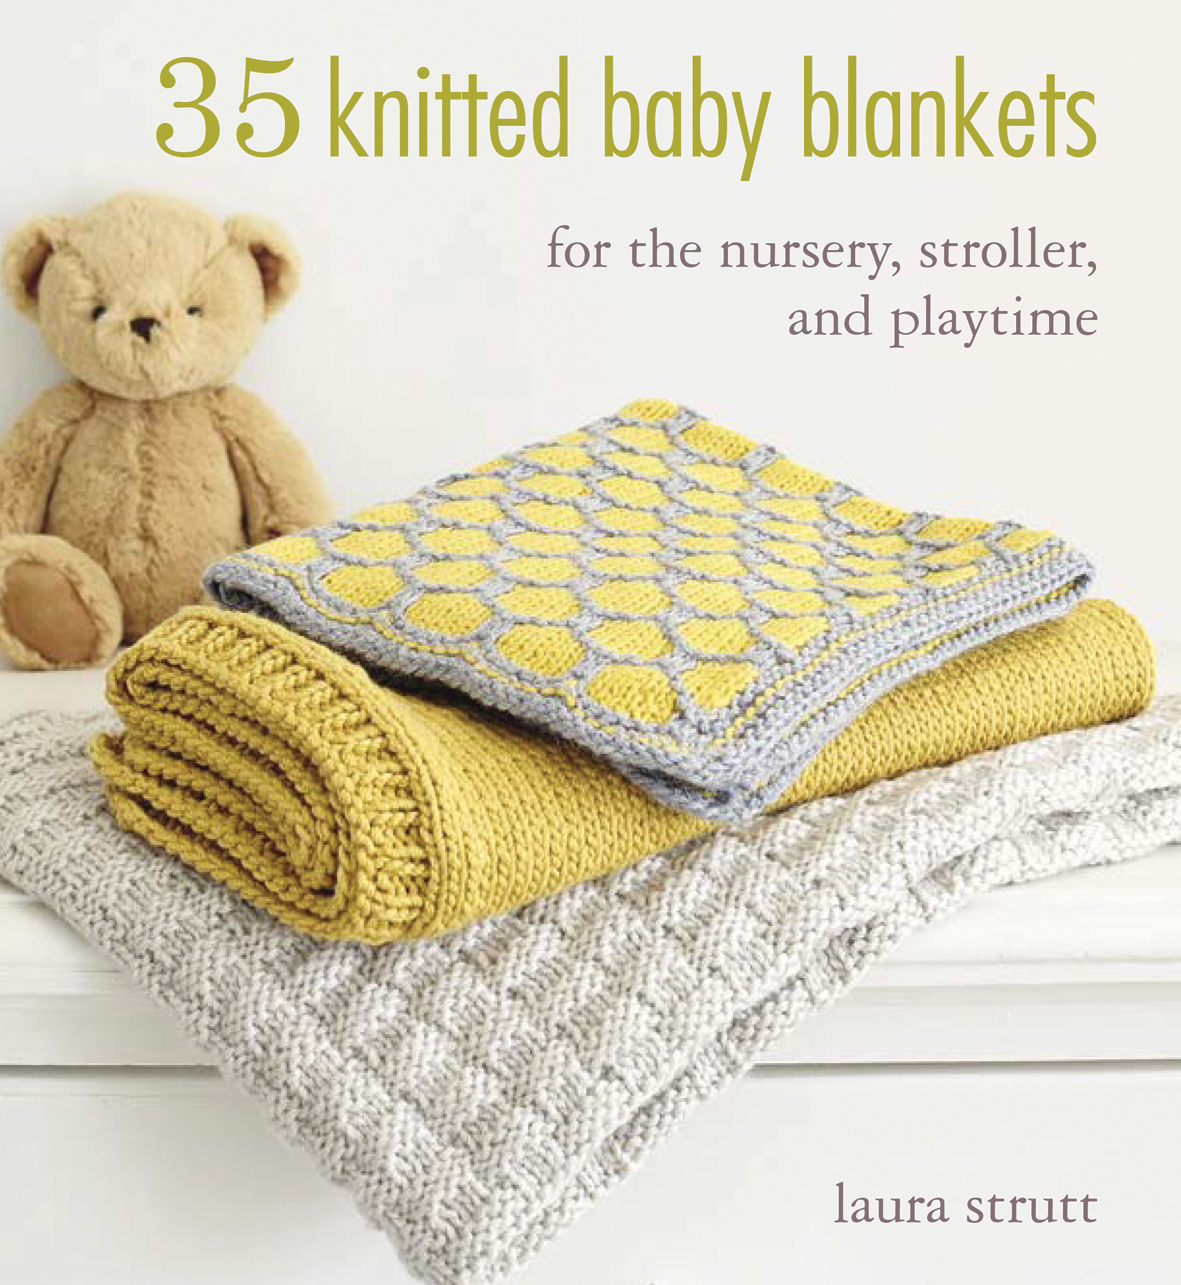 Knitting For Babies Books : Search press knitted baby blankets by laura strutt